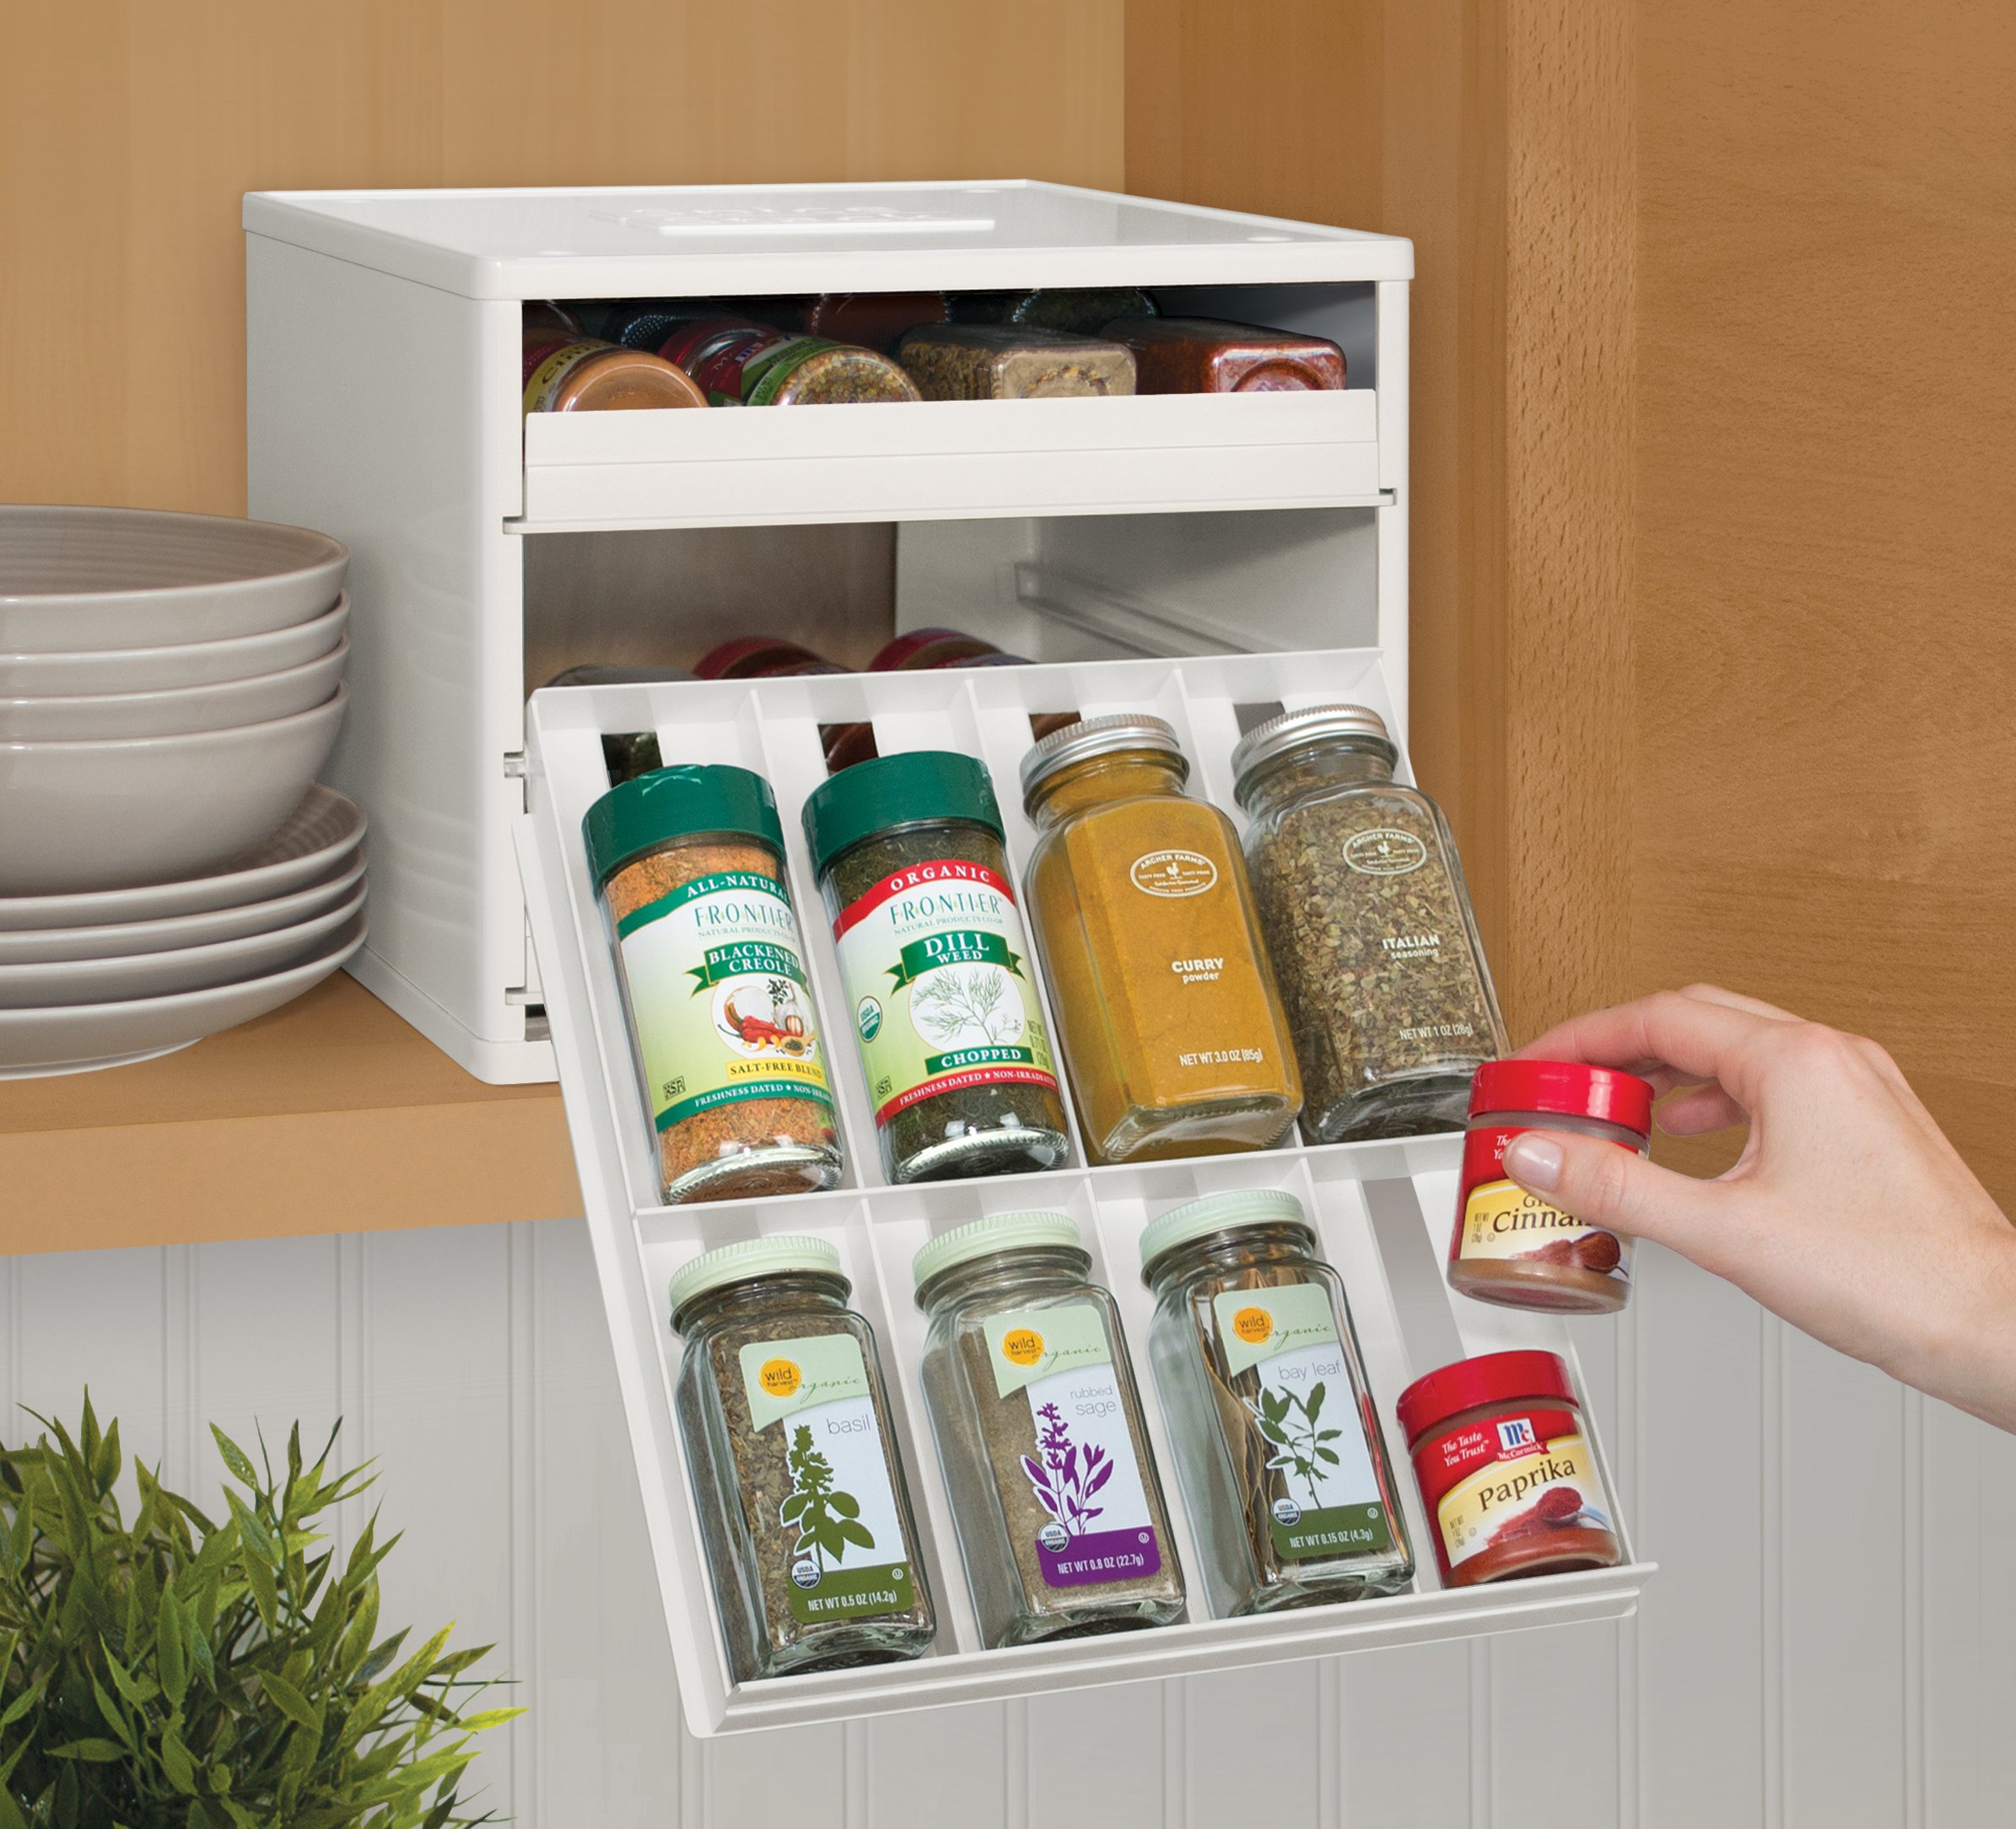 YouCopia Classic SpiceStack 24-Bottle Spice Organizer with Universal Drawers, White by YouCopia (Image #5)